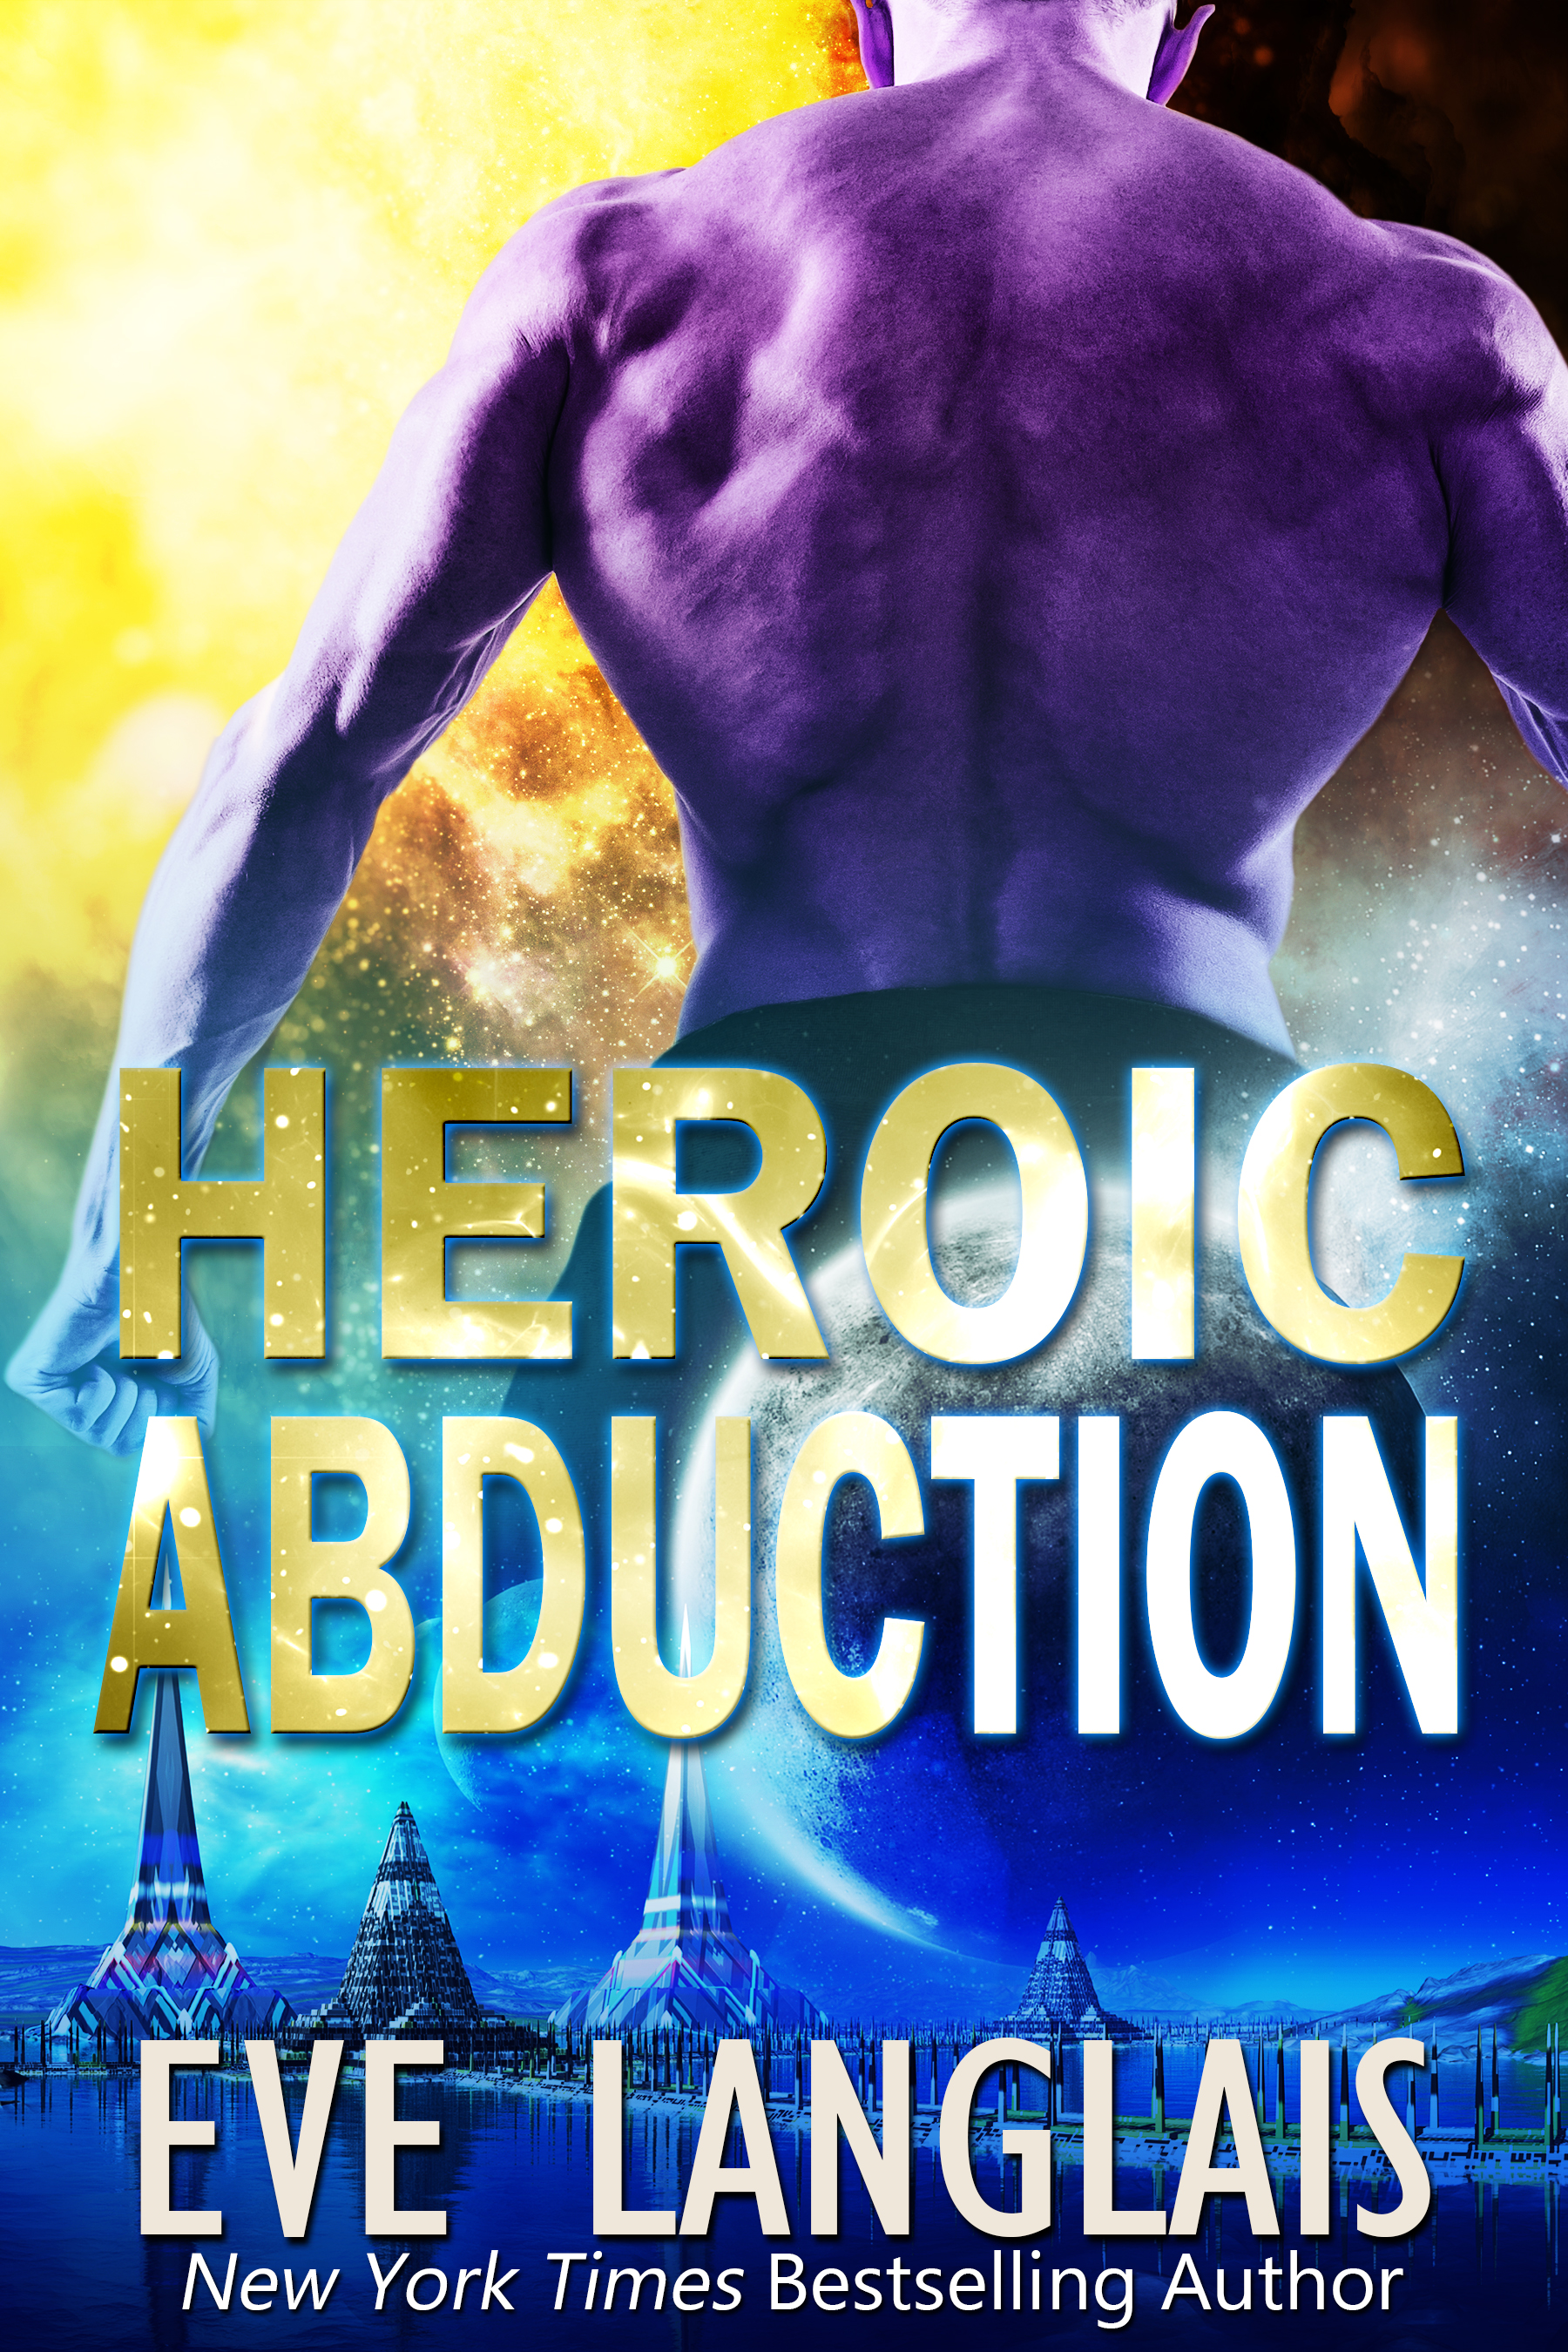 Heroic Abduction03_ebook_300dpi